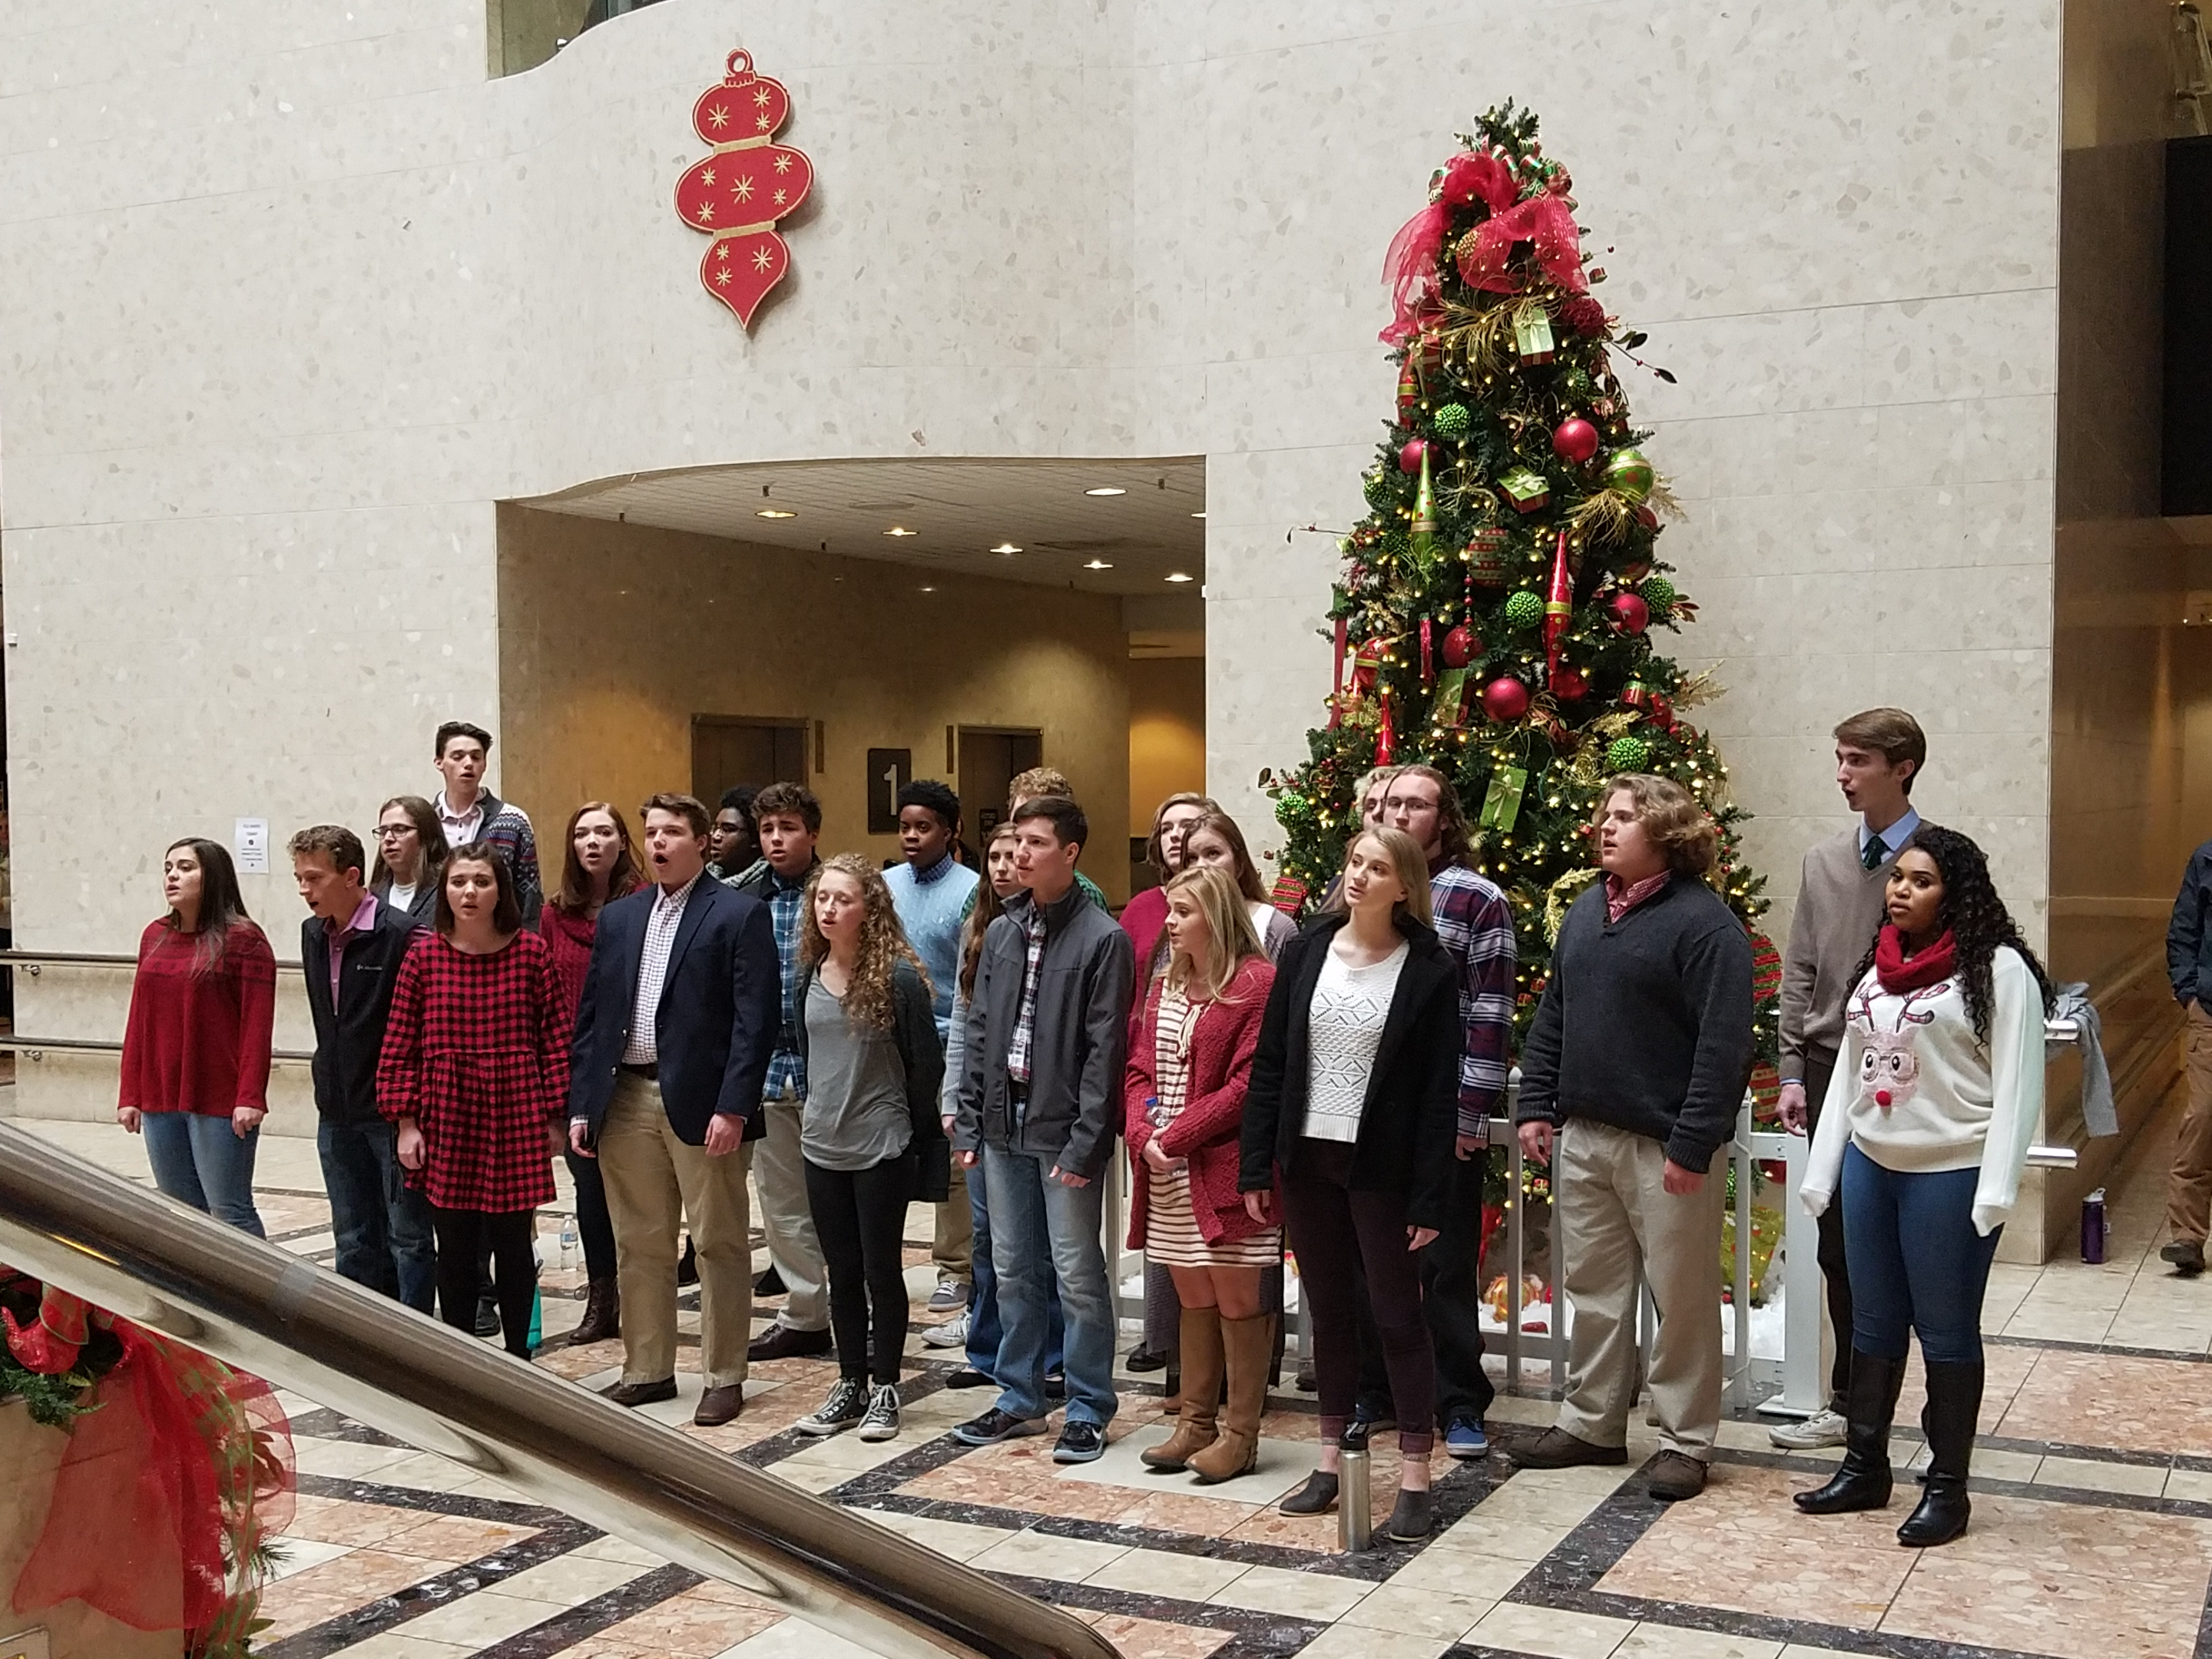 HTHS Chamber Choir kicks off the Christmas season with carolling, performances throughout the area